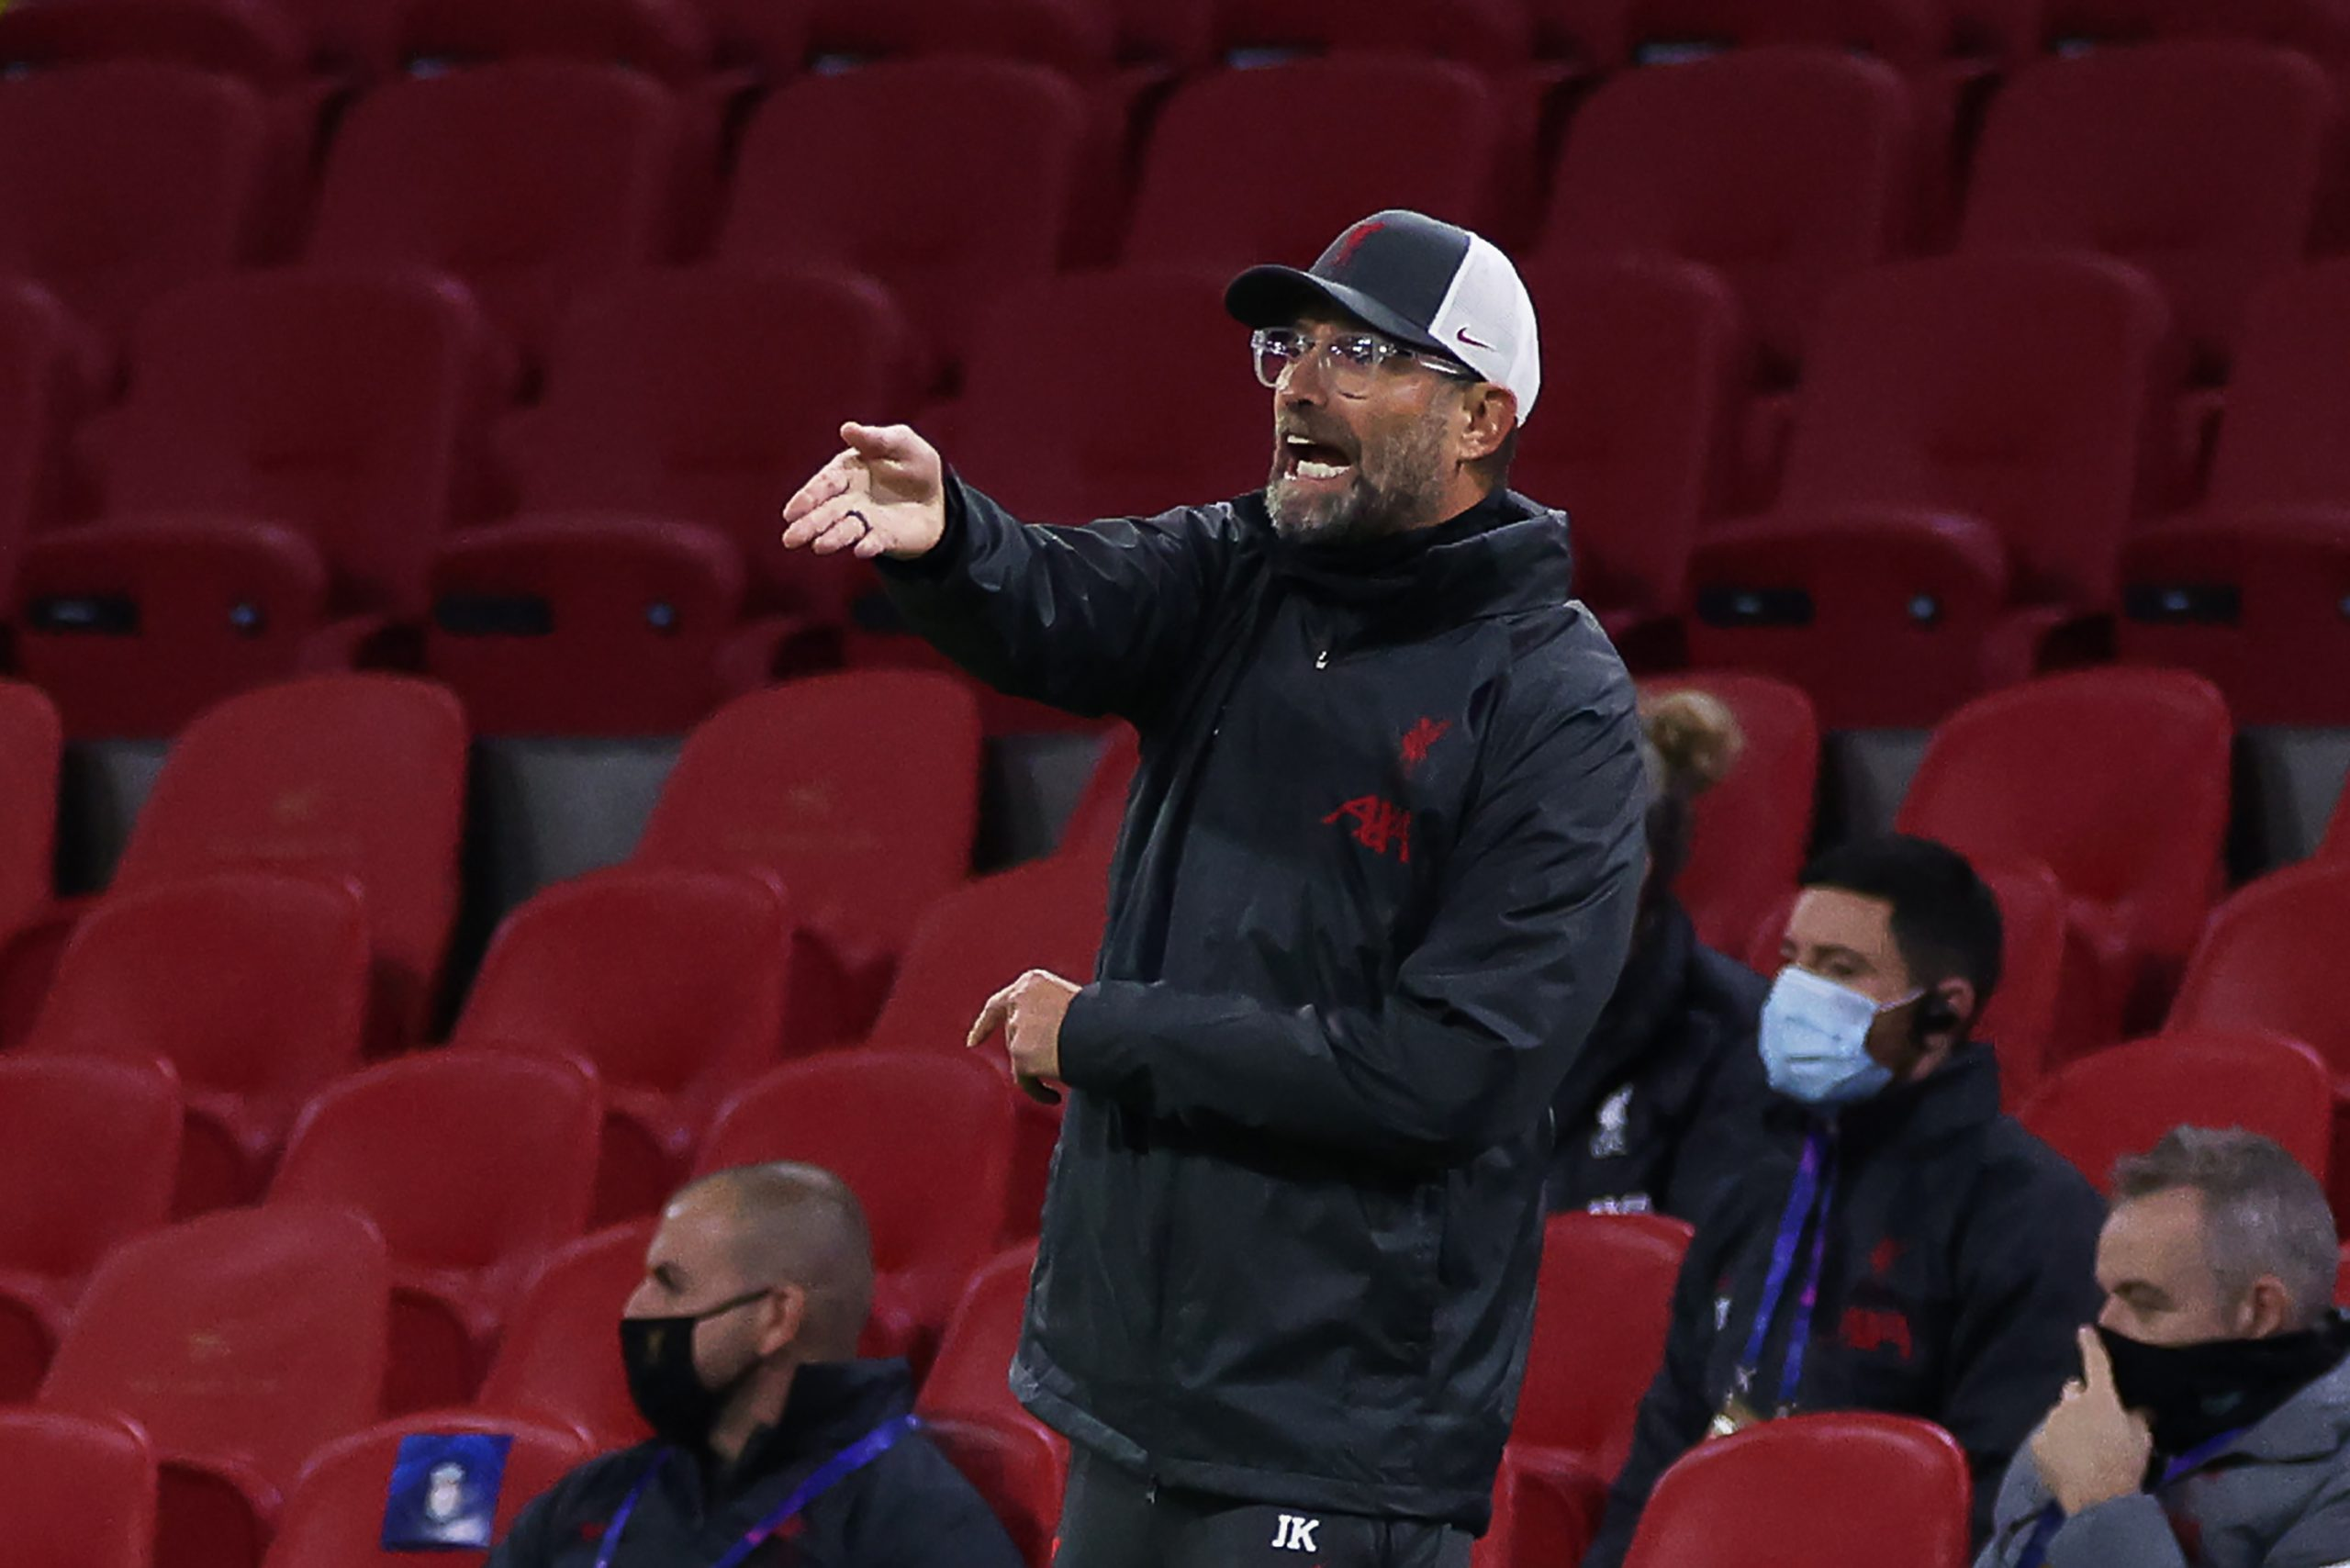 Jurgen Klopp is unhappy with the afternoon kick-off against Brighton just a few days after Liverpool playing Atalanta on Wednesday. (GETTY Images)